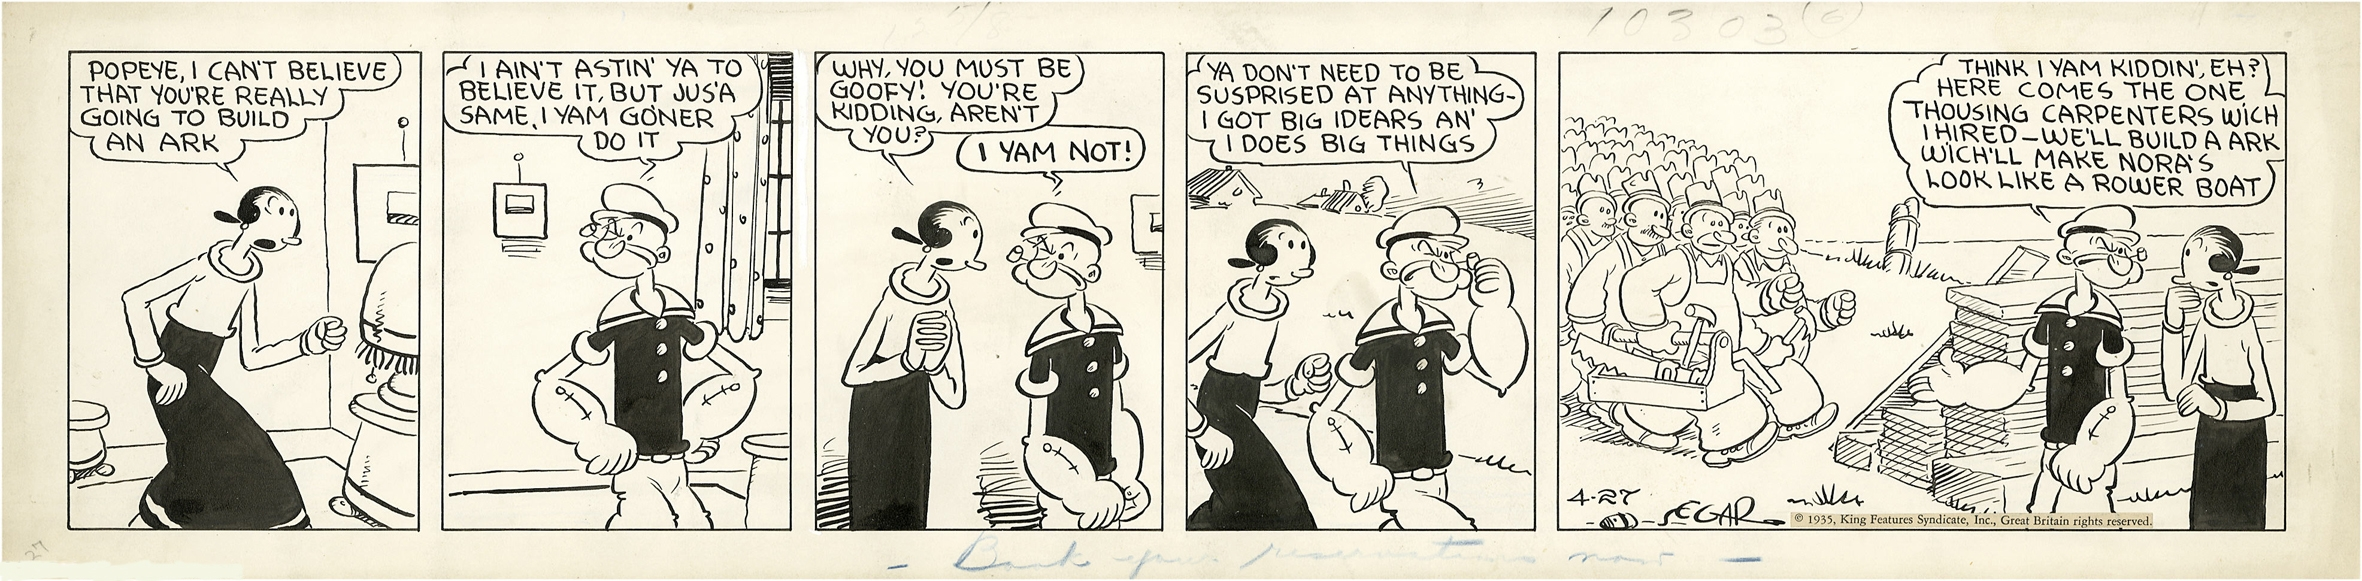 strips popeye 1929 daily